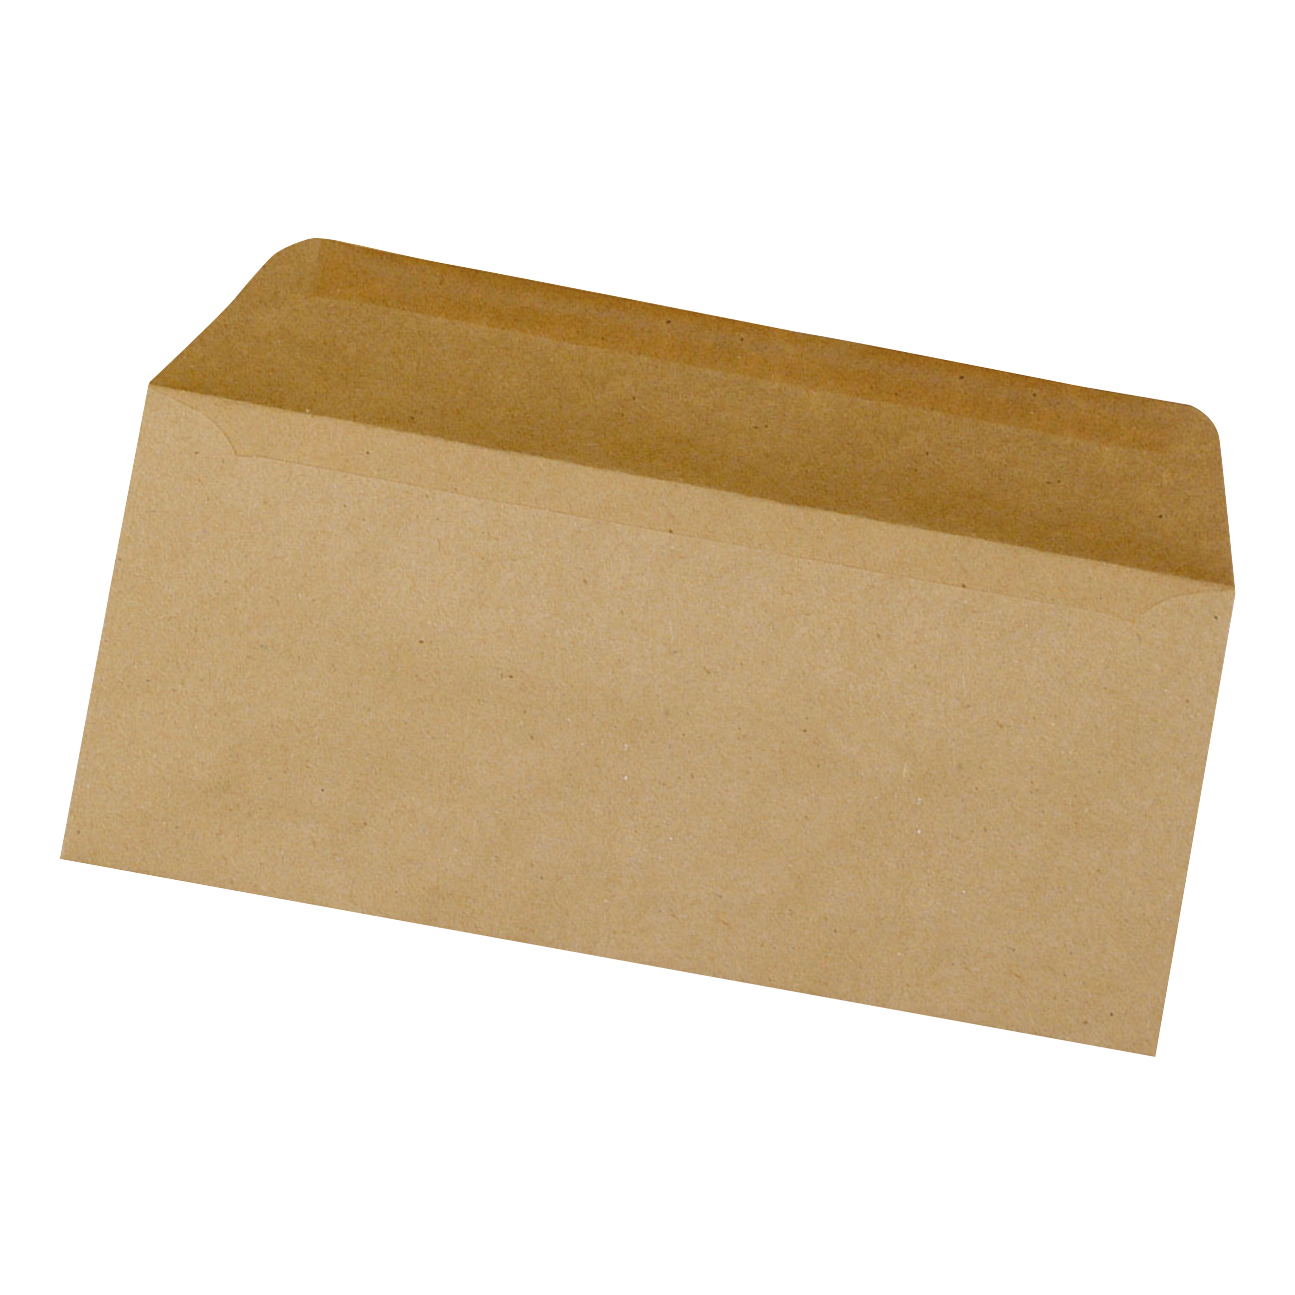 5 Star Office Envelopes Recycled Lightweight Wallet Gummed 75gsm Manilla DL [Pack 1000]